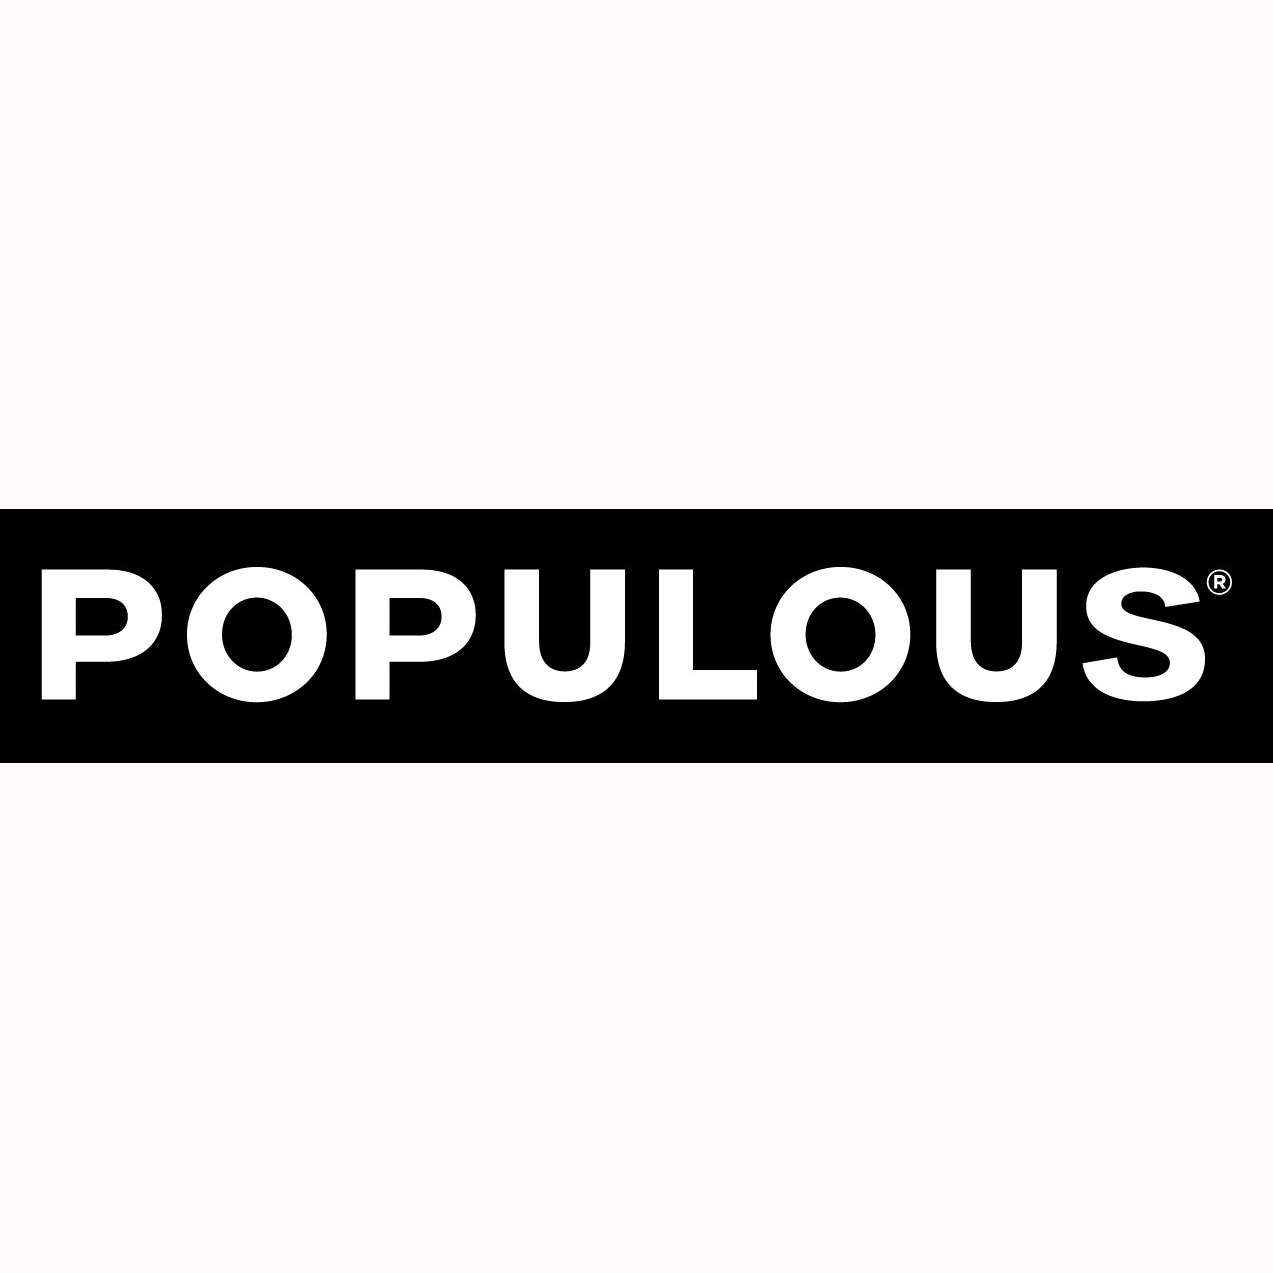 Populous_PrimLogo_Rev copy